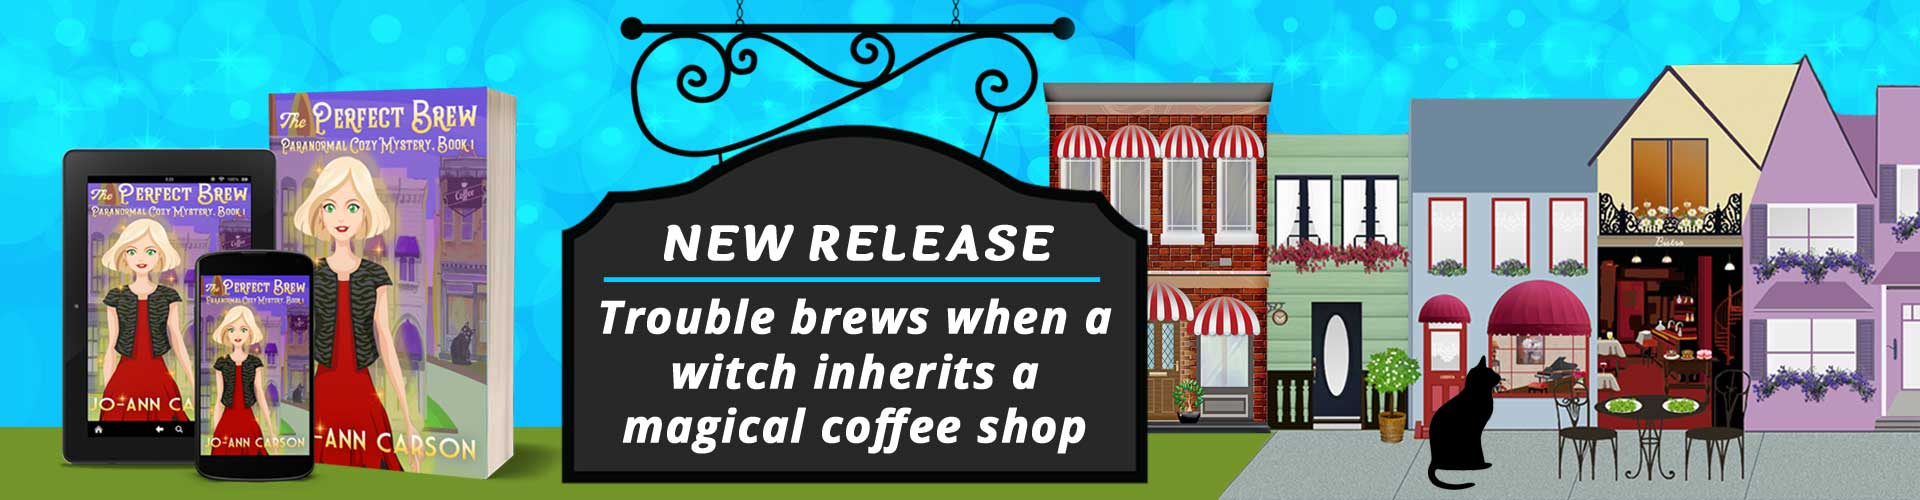 New Release - The Perfect Brew